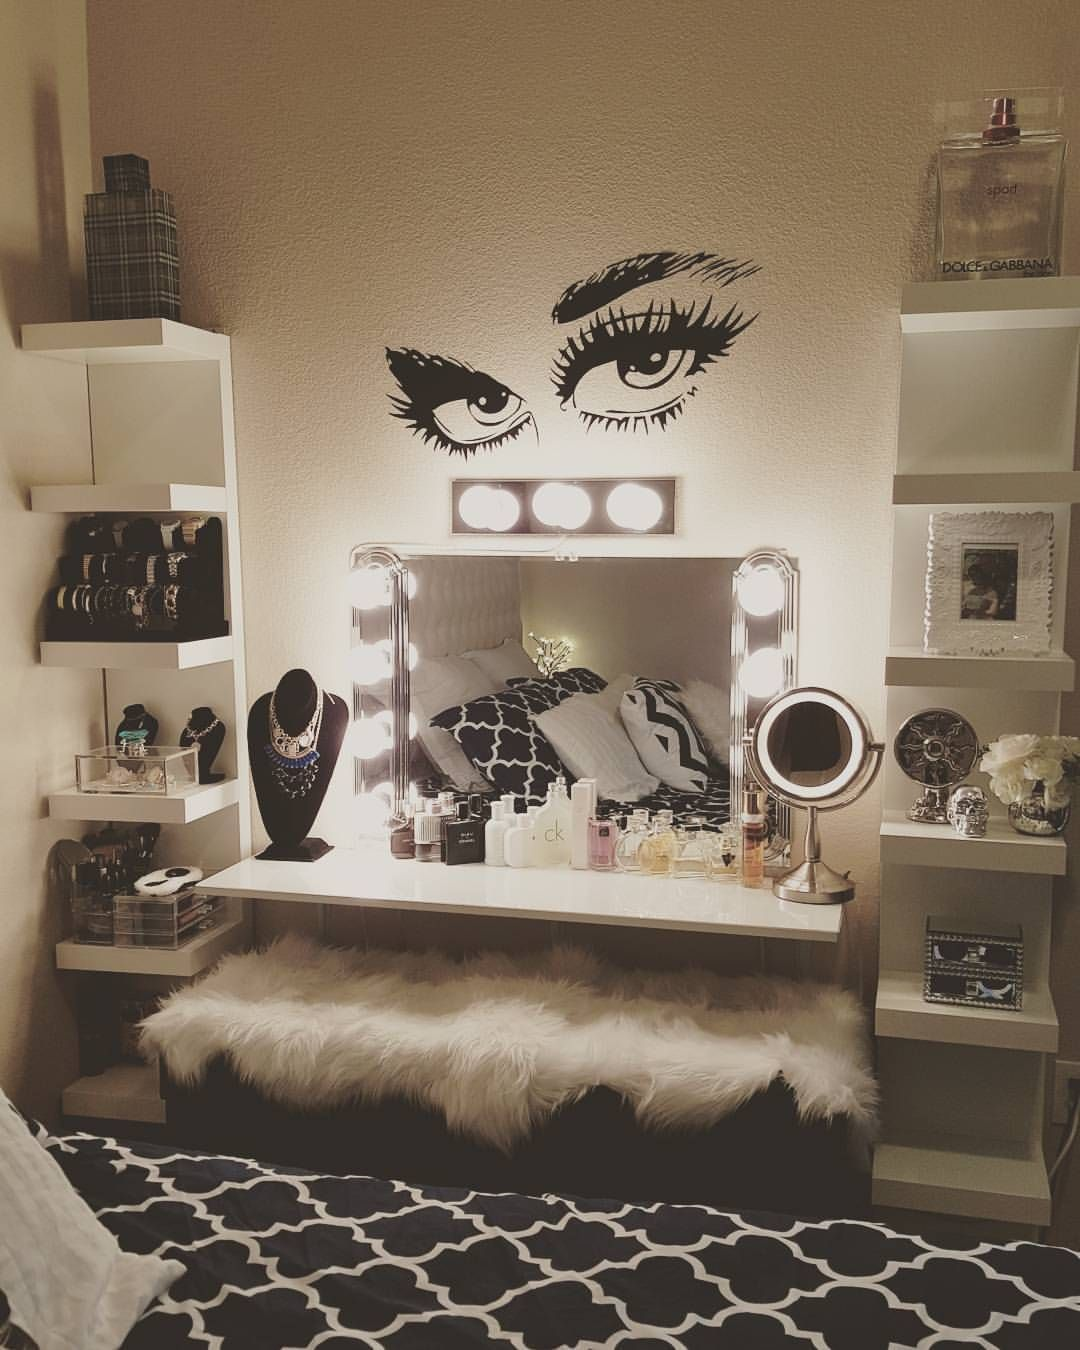 Ikea Schlafzimmer Instagram See This Instagram Photo By Sophiecute5 11 Likes